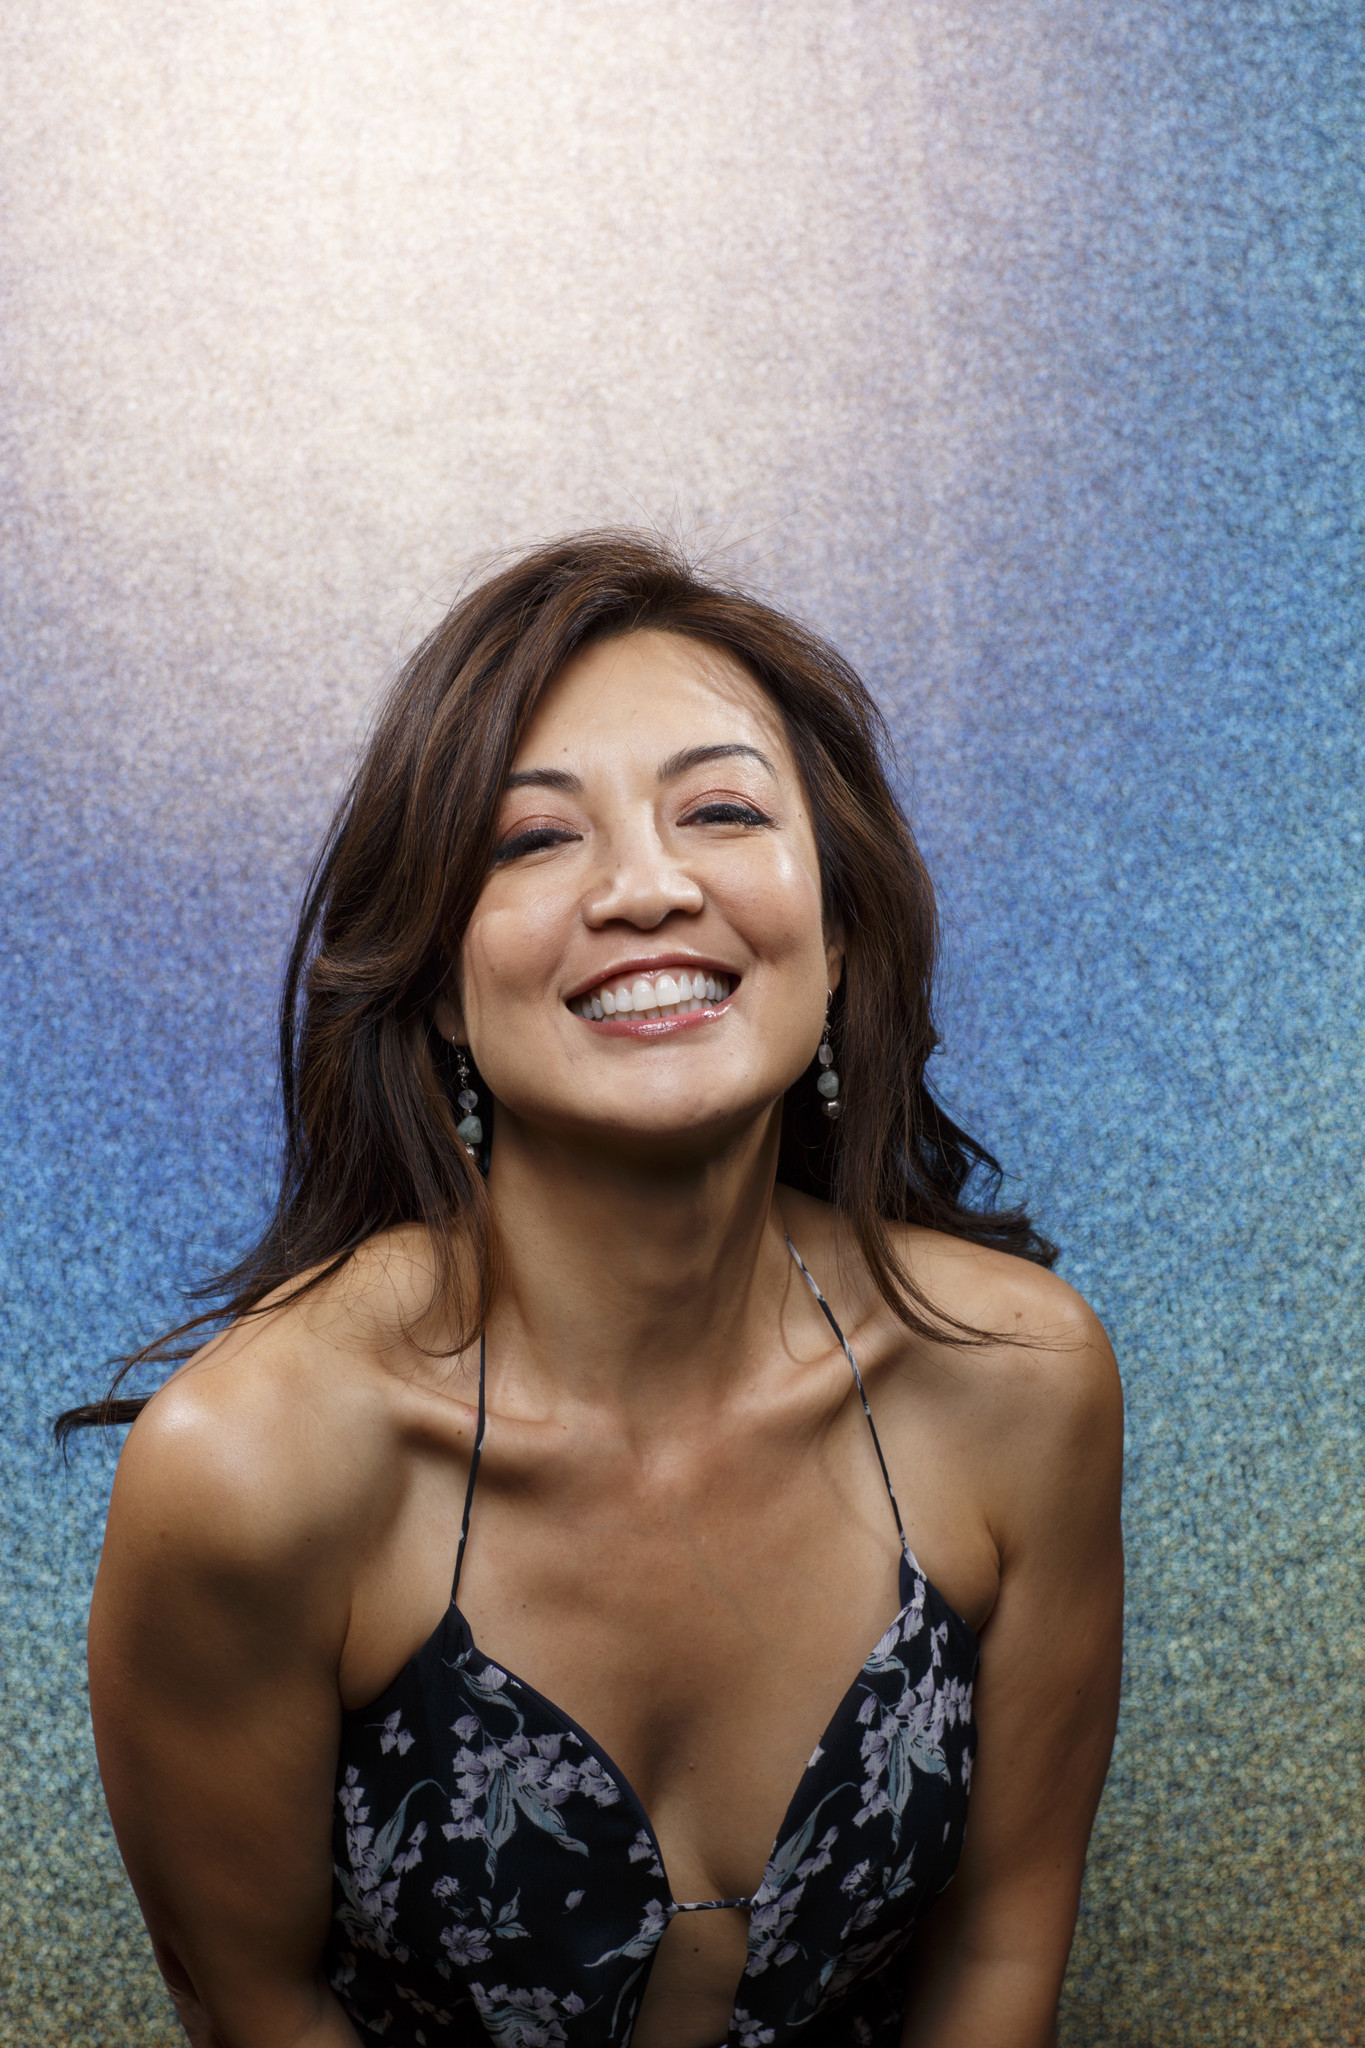 """SAN DIEGO, CALIF. -- JULY 21, 2018-- Ming-Na Wen from the television series """"Agents of SHIELD,"""" phot"""